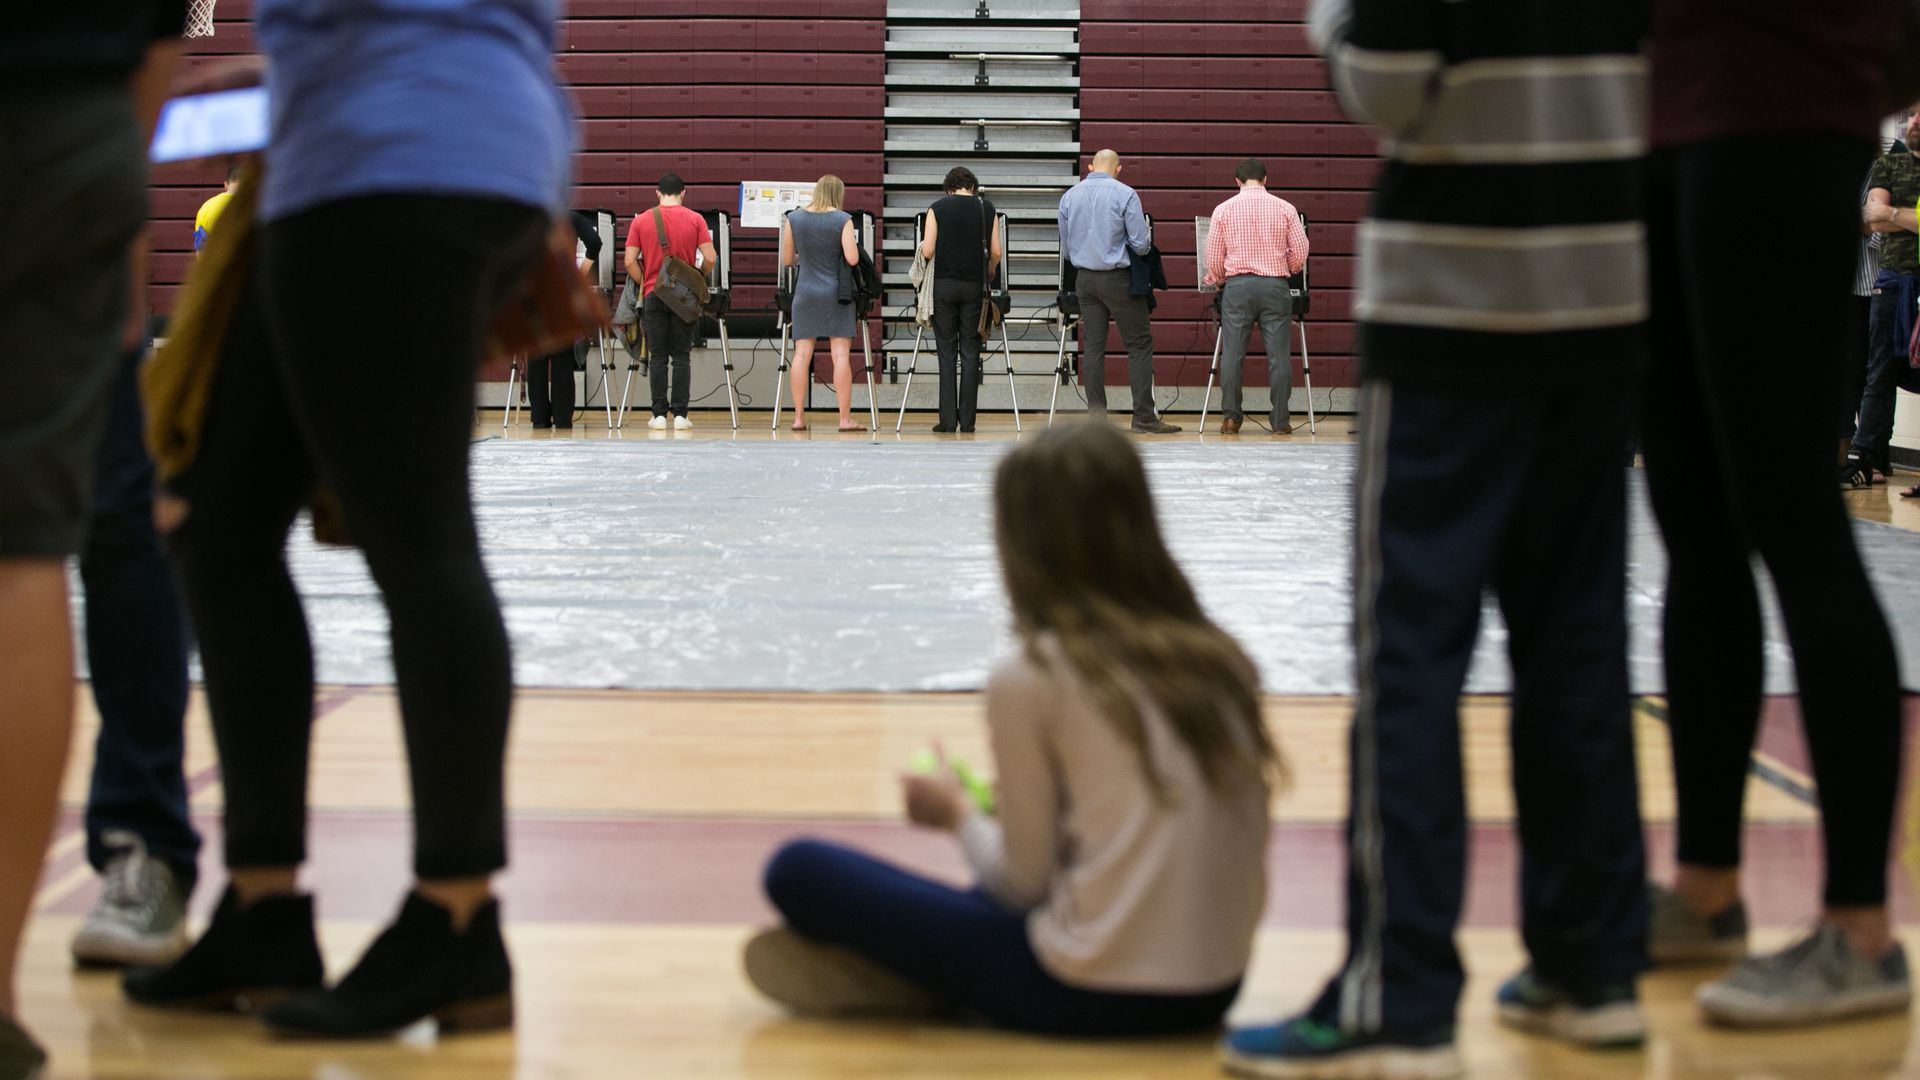 Voters in a gymnasium line up to vote.